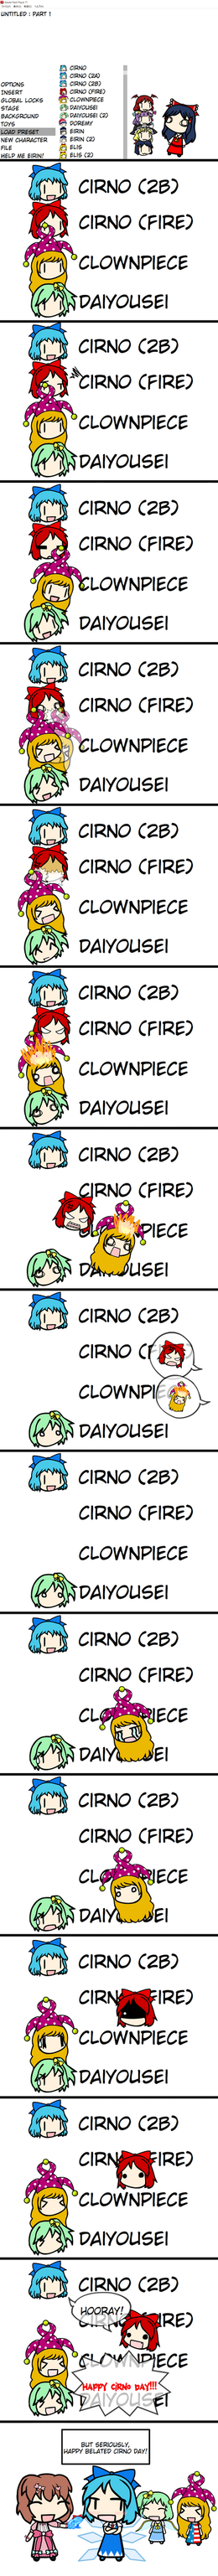 Happy Belated Cirno Day! by Tsukune429